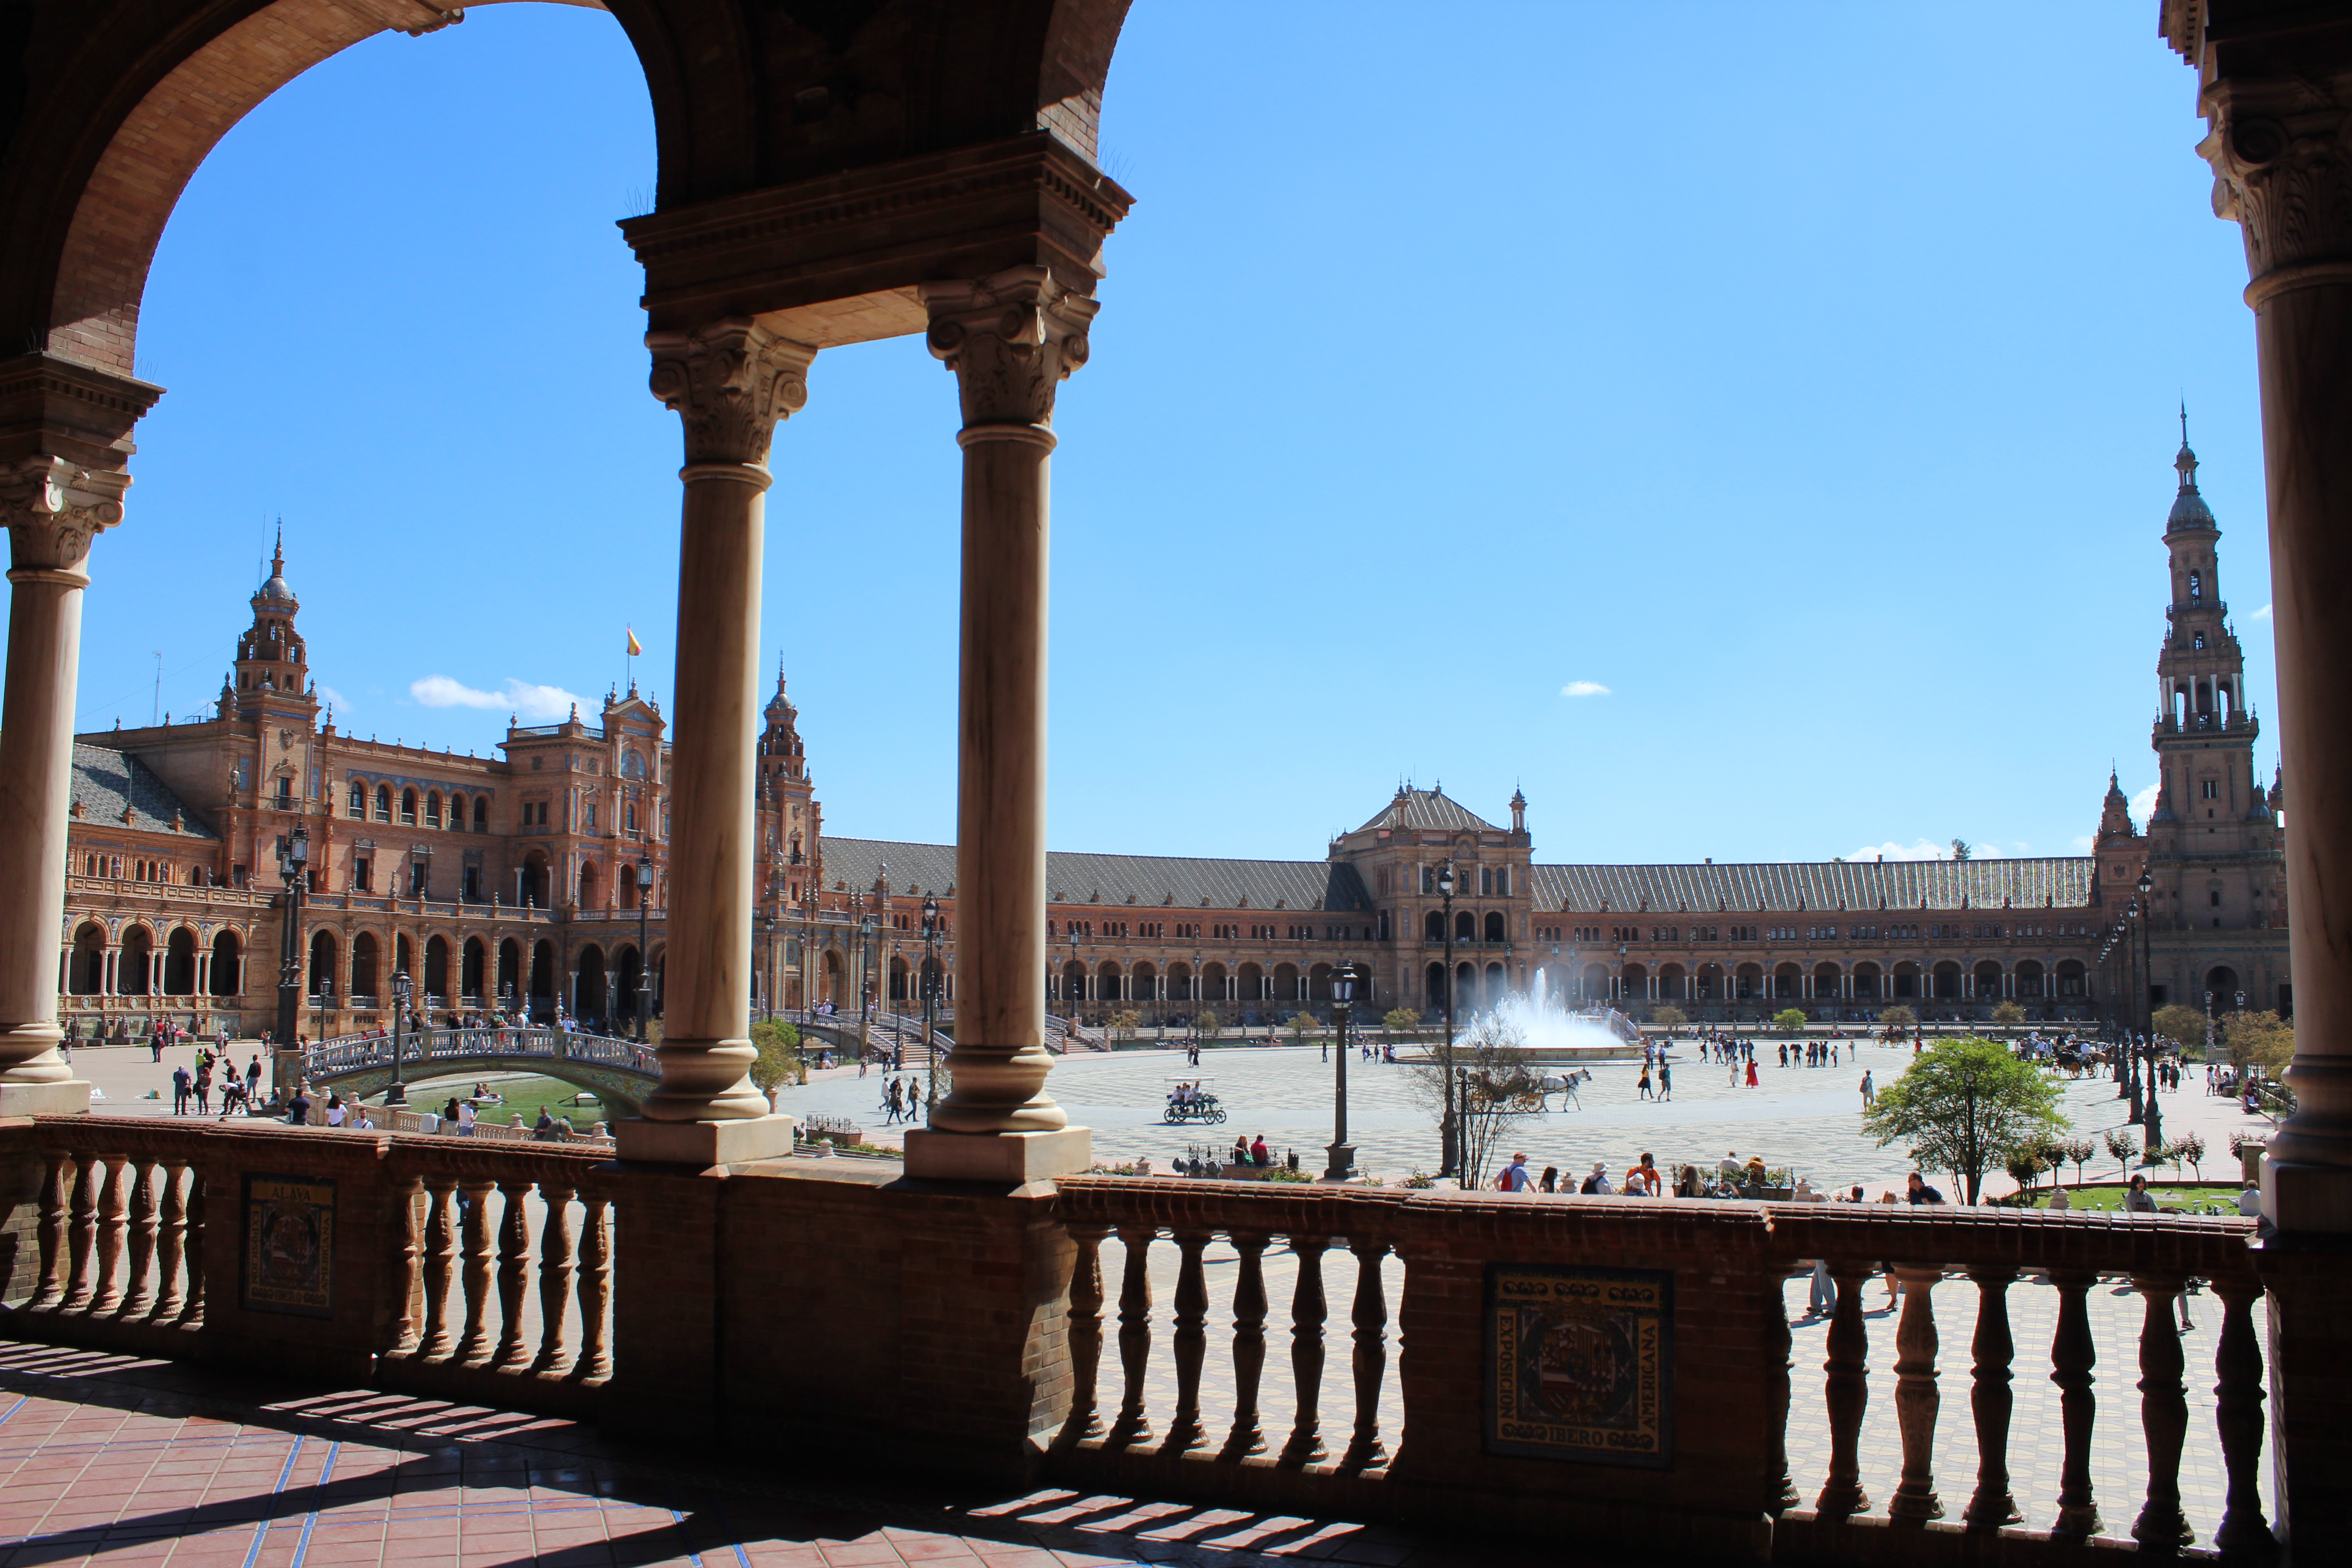 Plaza Espana in Sevilla